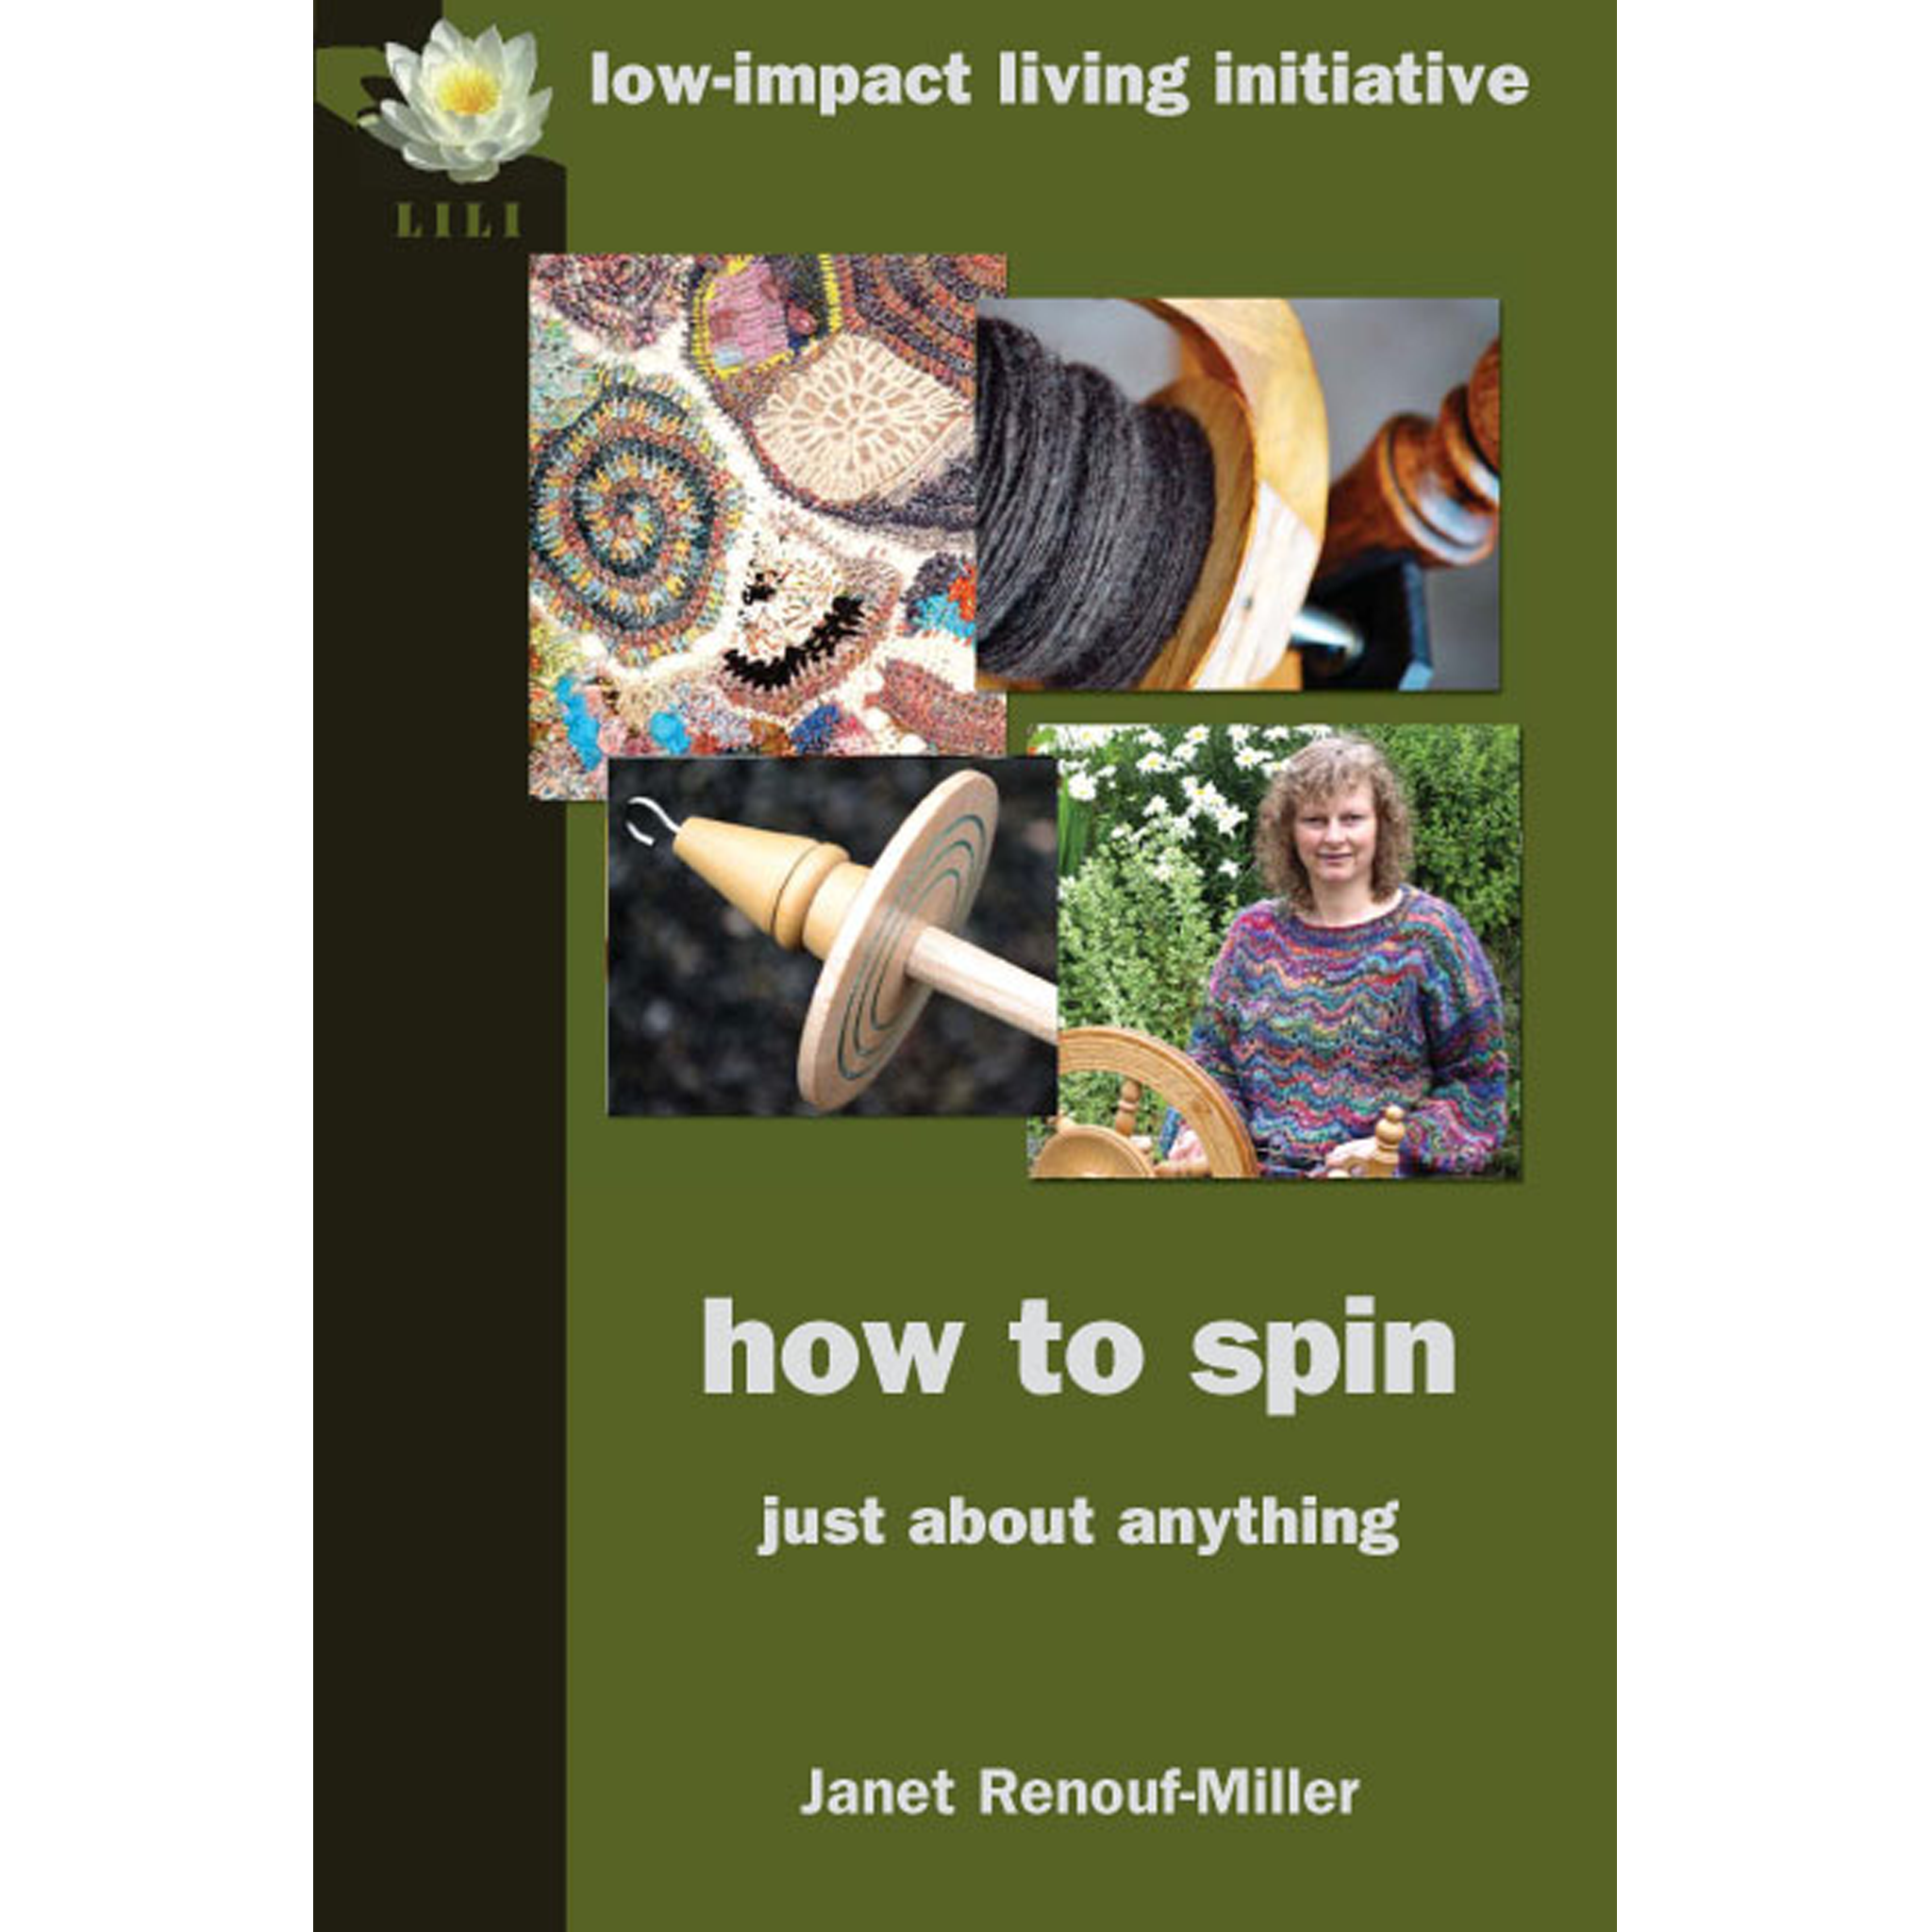 How to spin (just about anything)